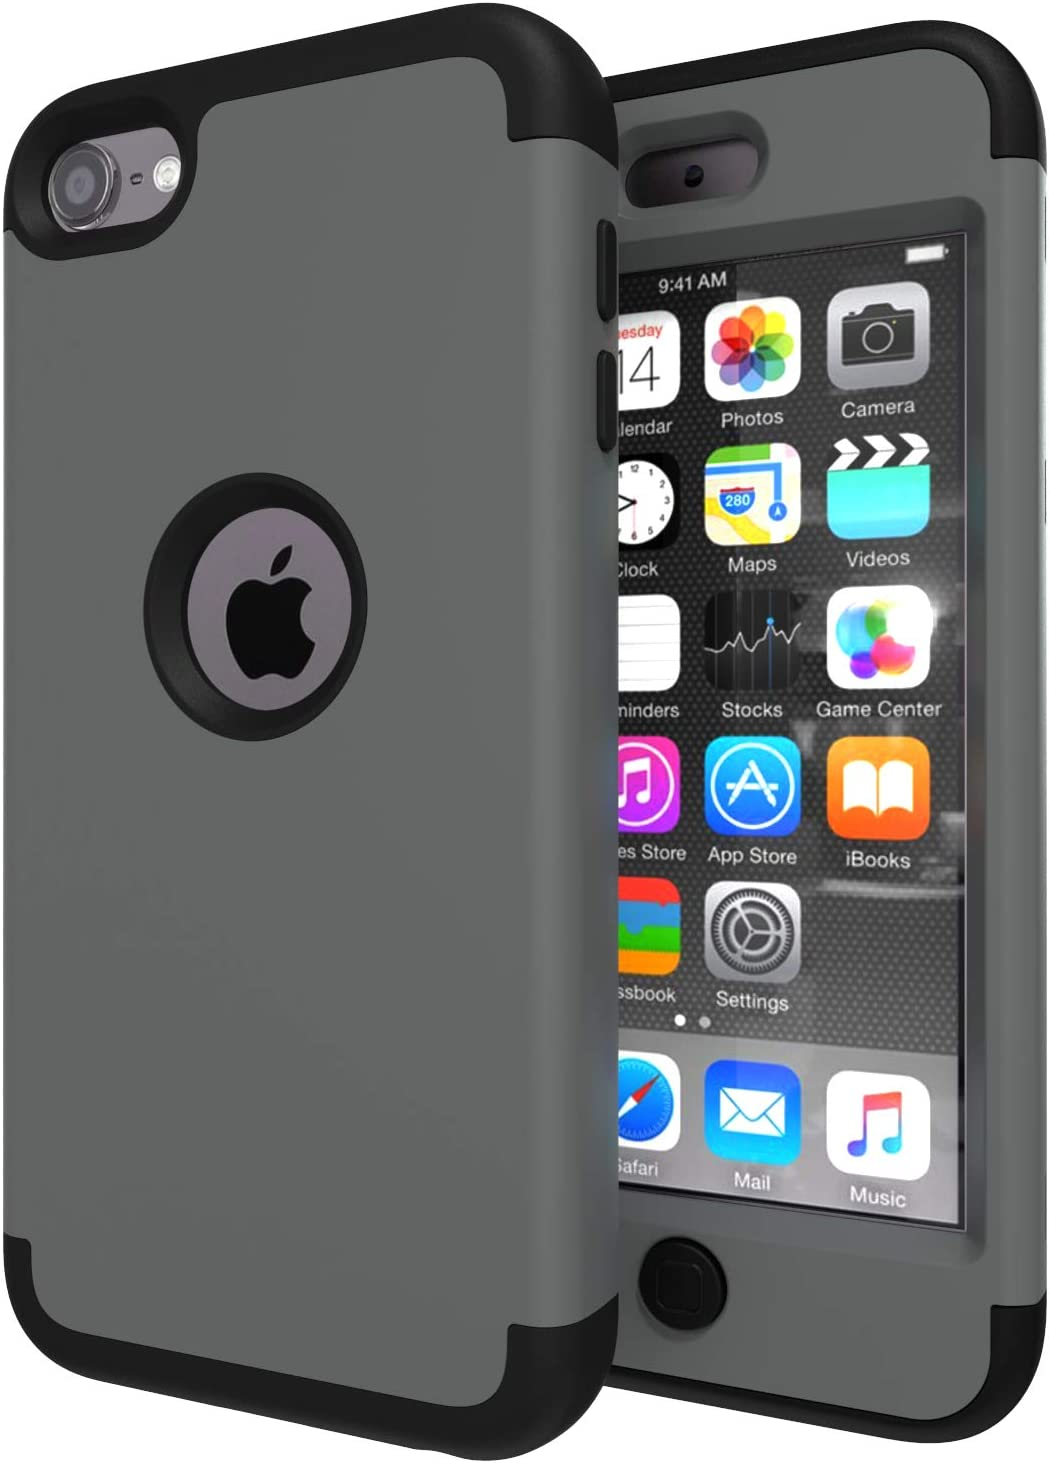 iPod Touch 7 Case,iPod Touch 6 Case,SLMY(TM) Heavy Duty High Impact Armor Case Cover Protective Case for Apple iPod Touch 5/6/7th Generation Deep Gray